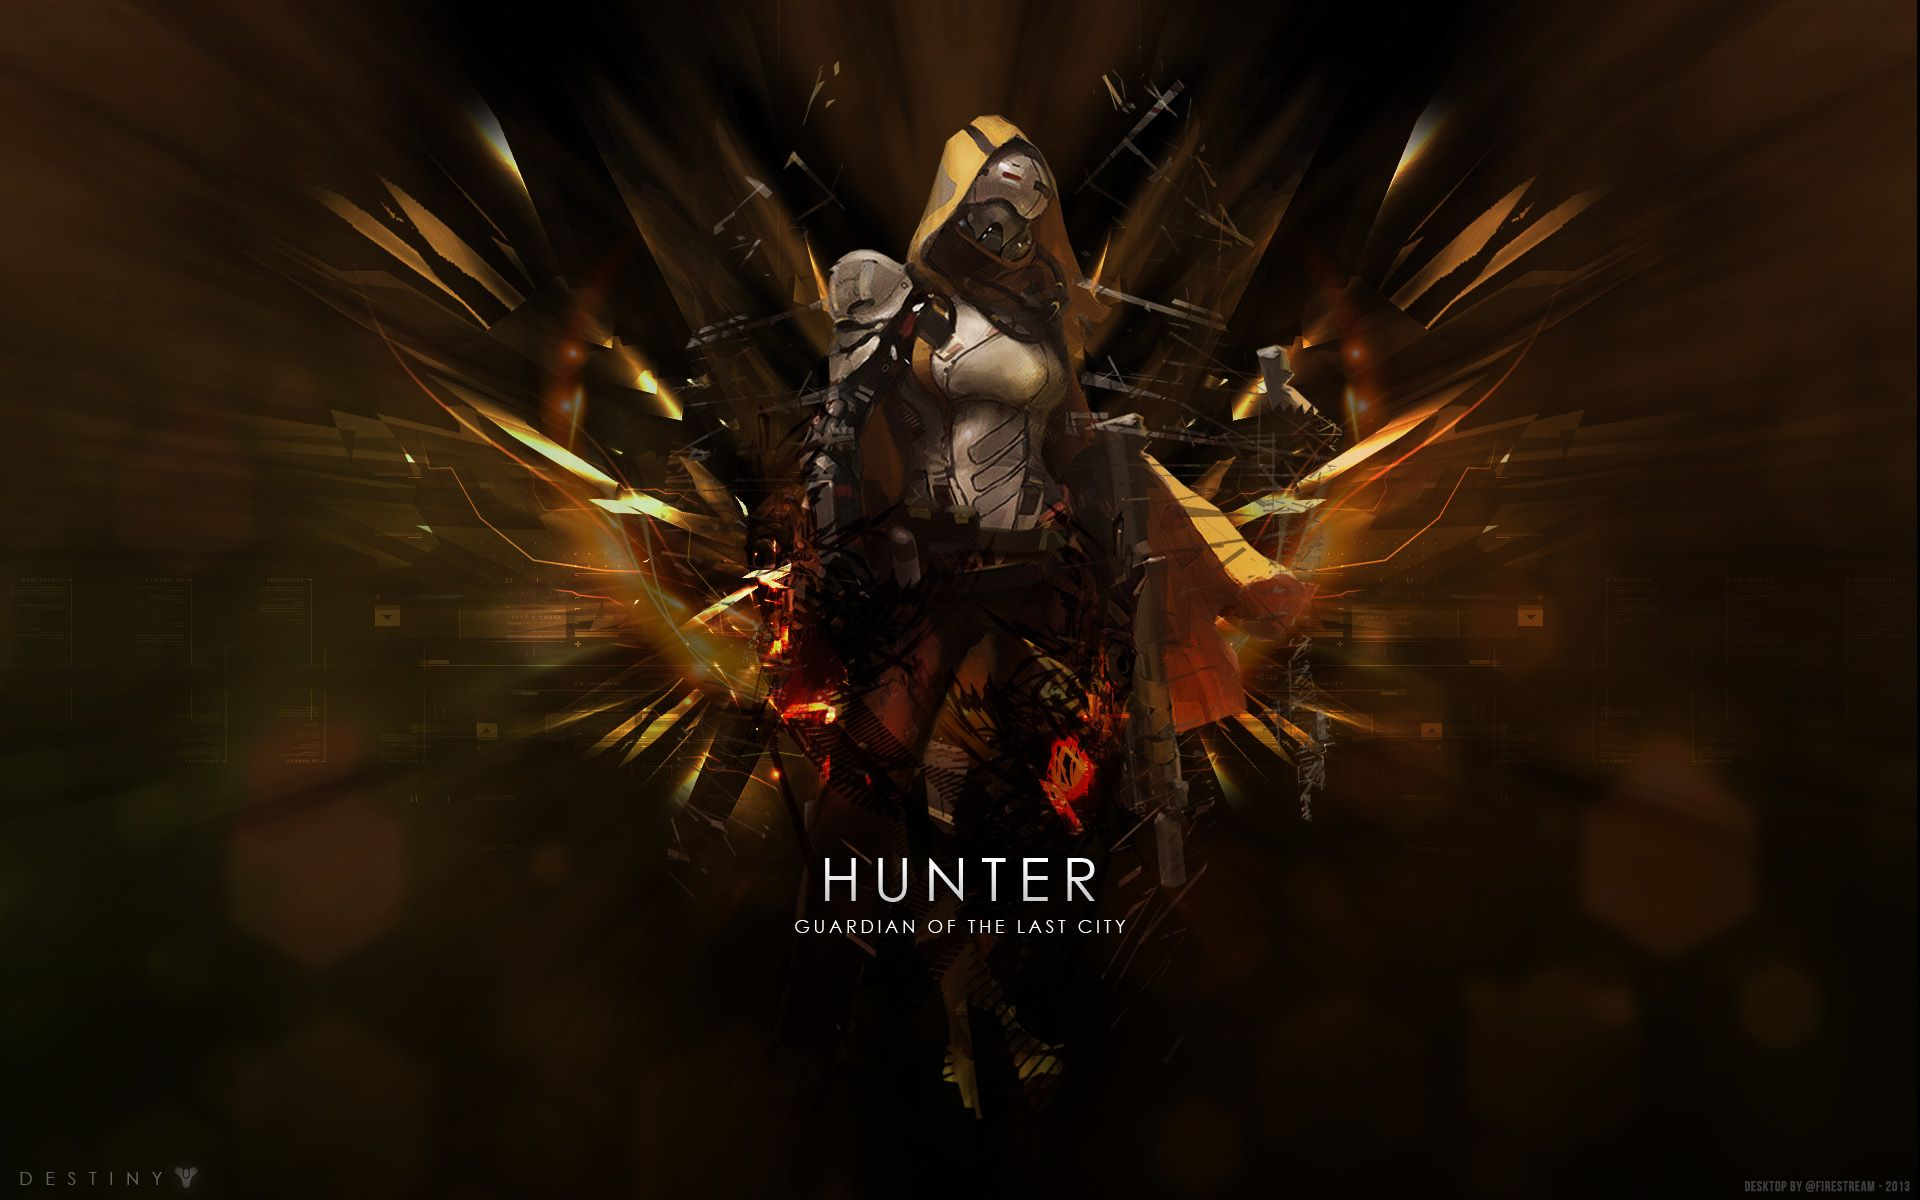 Destiny Hunter Hd Wallpaper Awesome This Game Is Fulllly